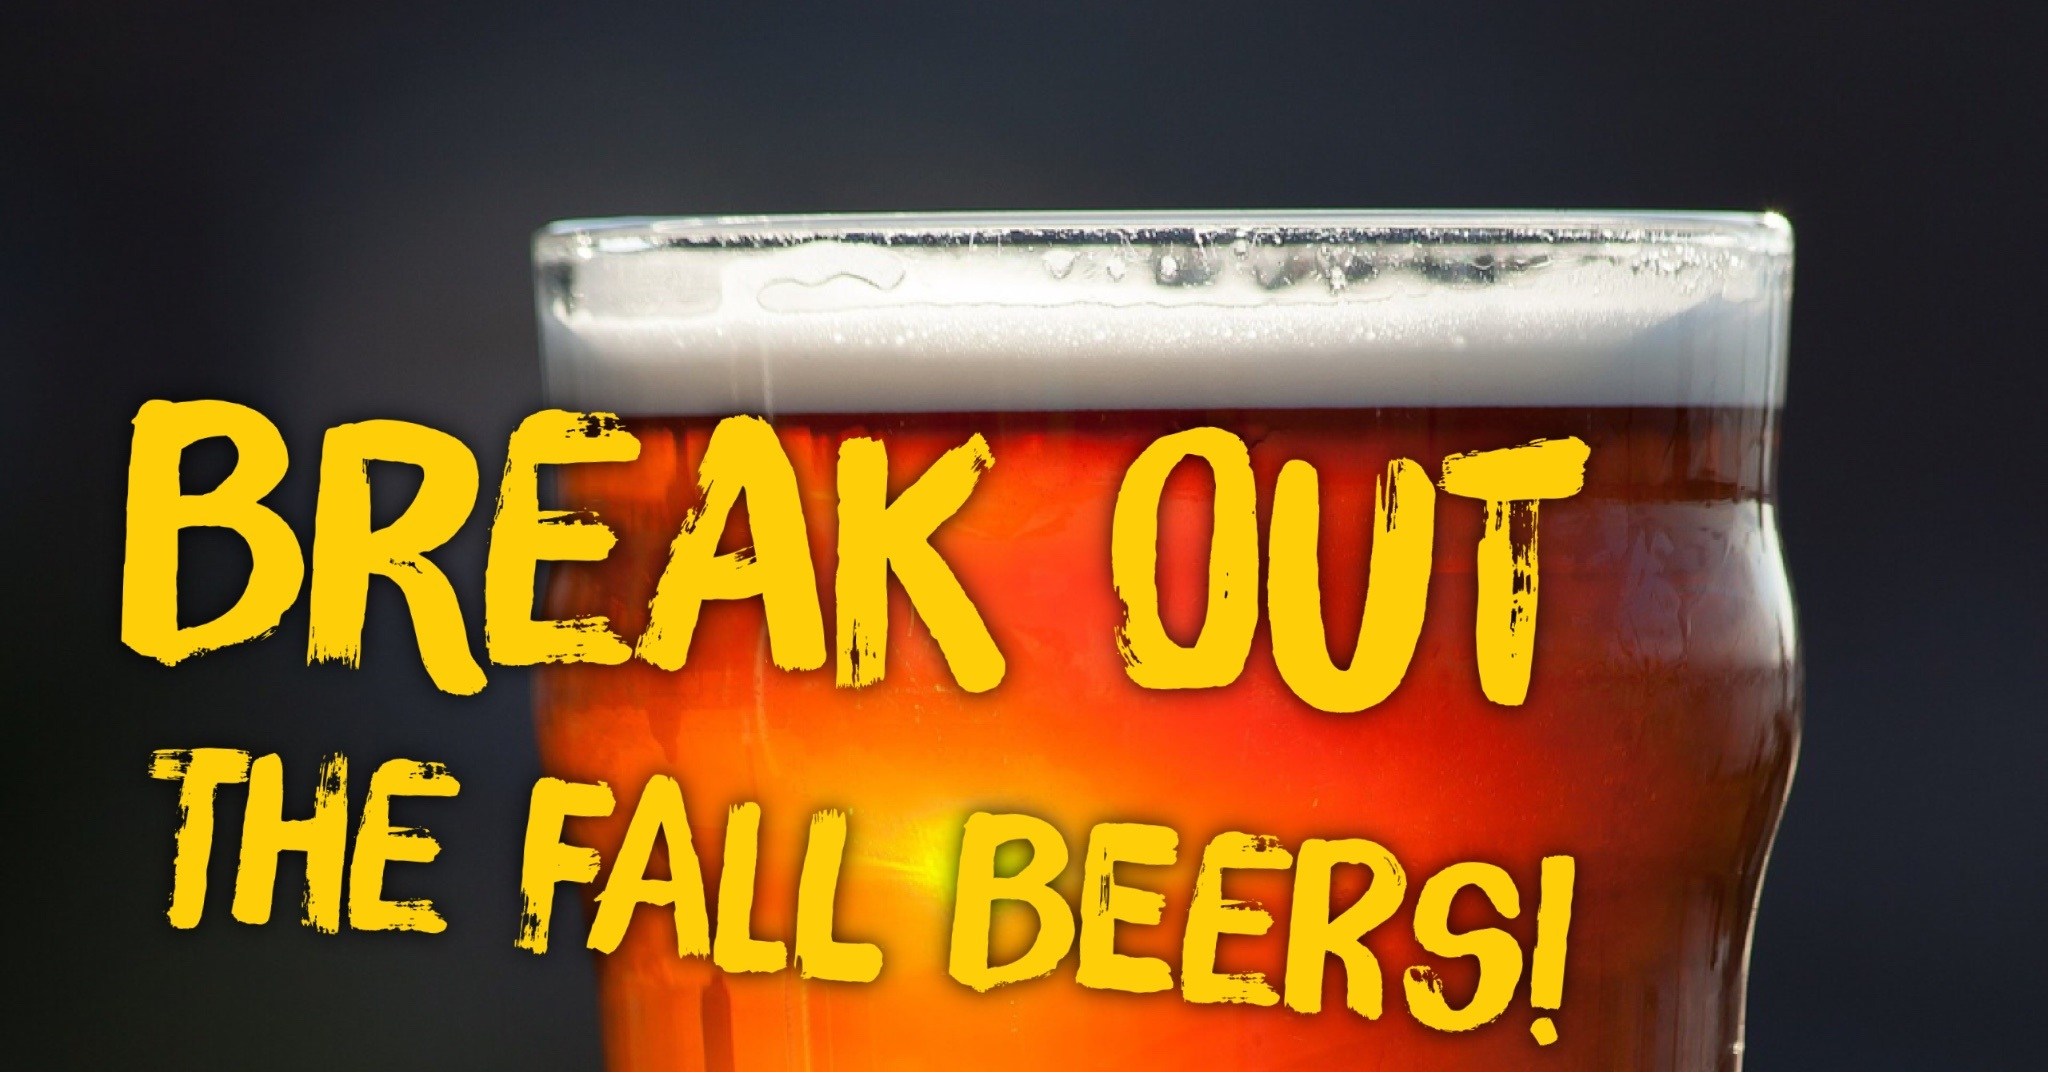 Fall beers (and wine!) will abound at Yorktobefest